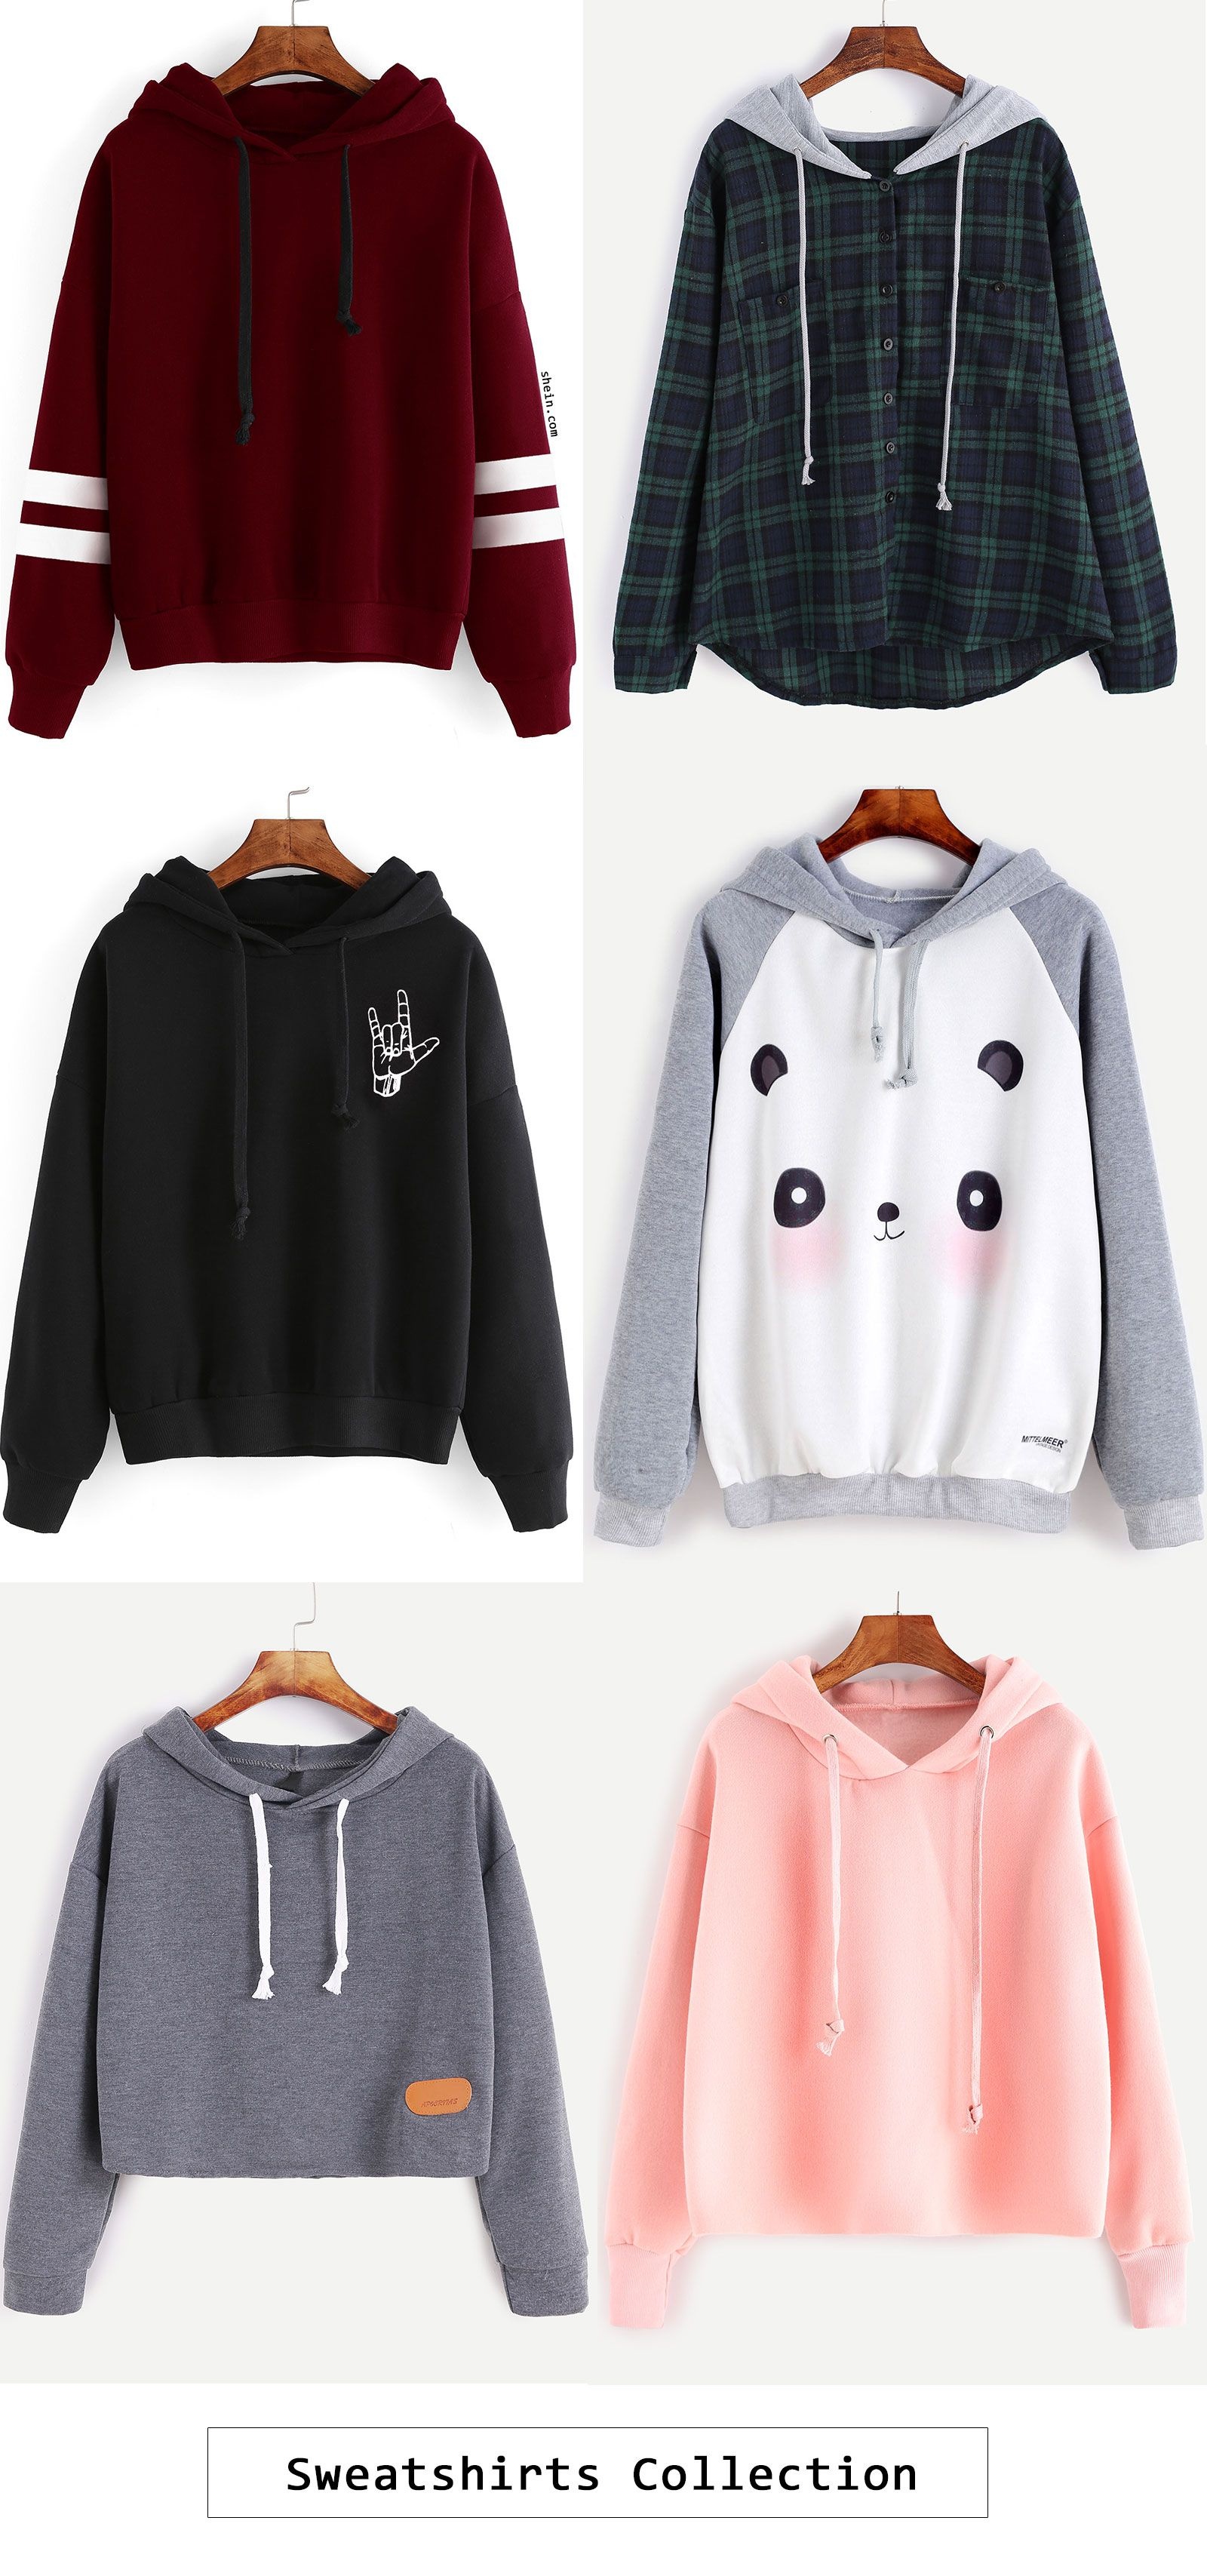 4e911d2f Sweatshirt collection https://tmblr.co/Zuhqqc2Pj0W5R Hipster Girl Outfits,  Hipster